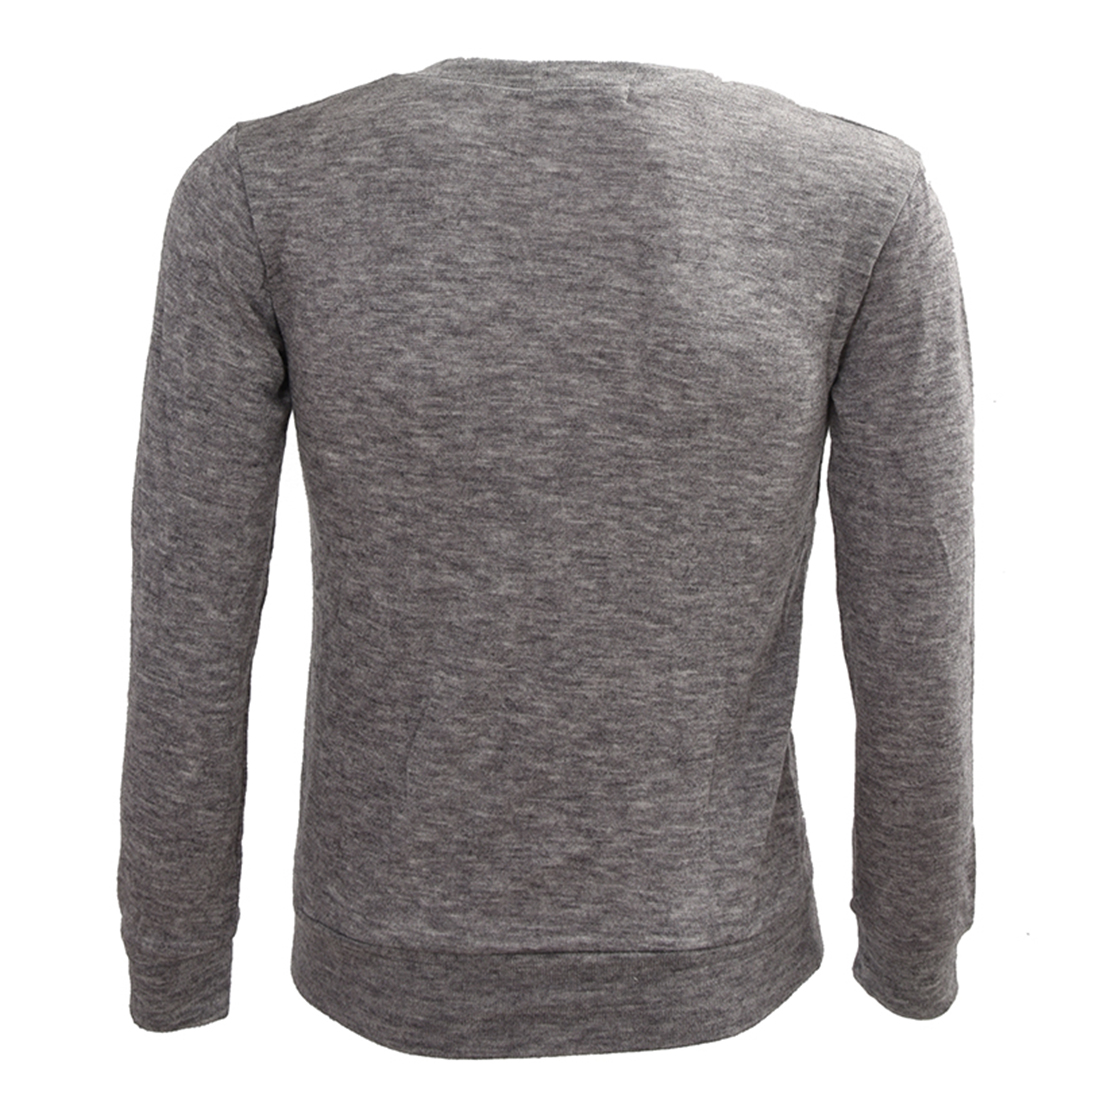 2017 NEW Casual Slim Fit V-neck Knitted Cardigan Pullover Sweater Tops Light Gray